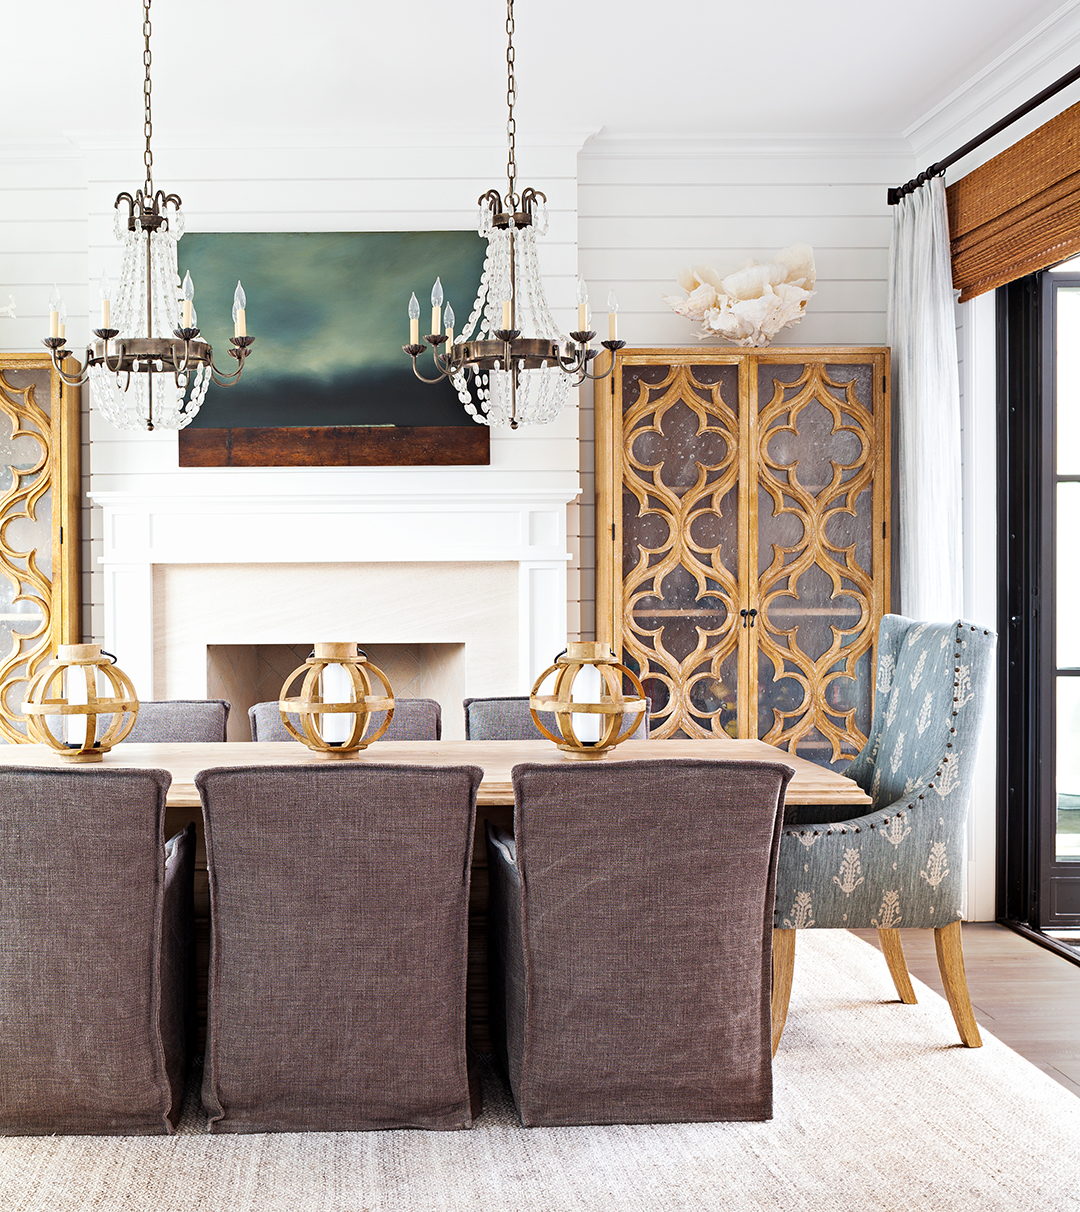 dining area with crystal chandeliers and fireplace